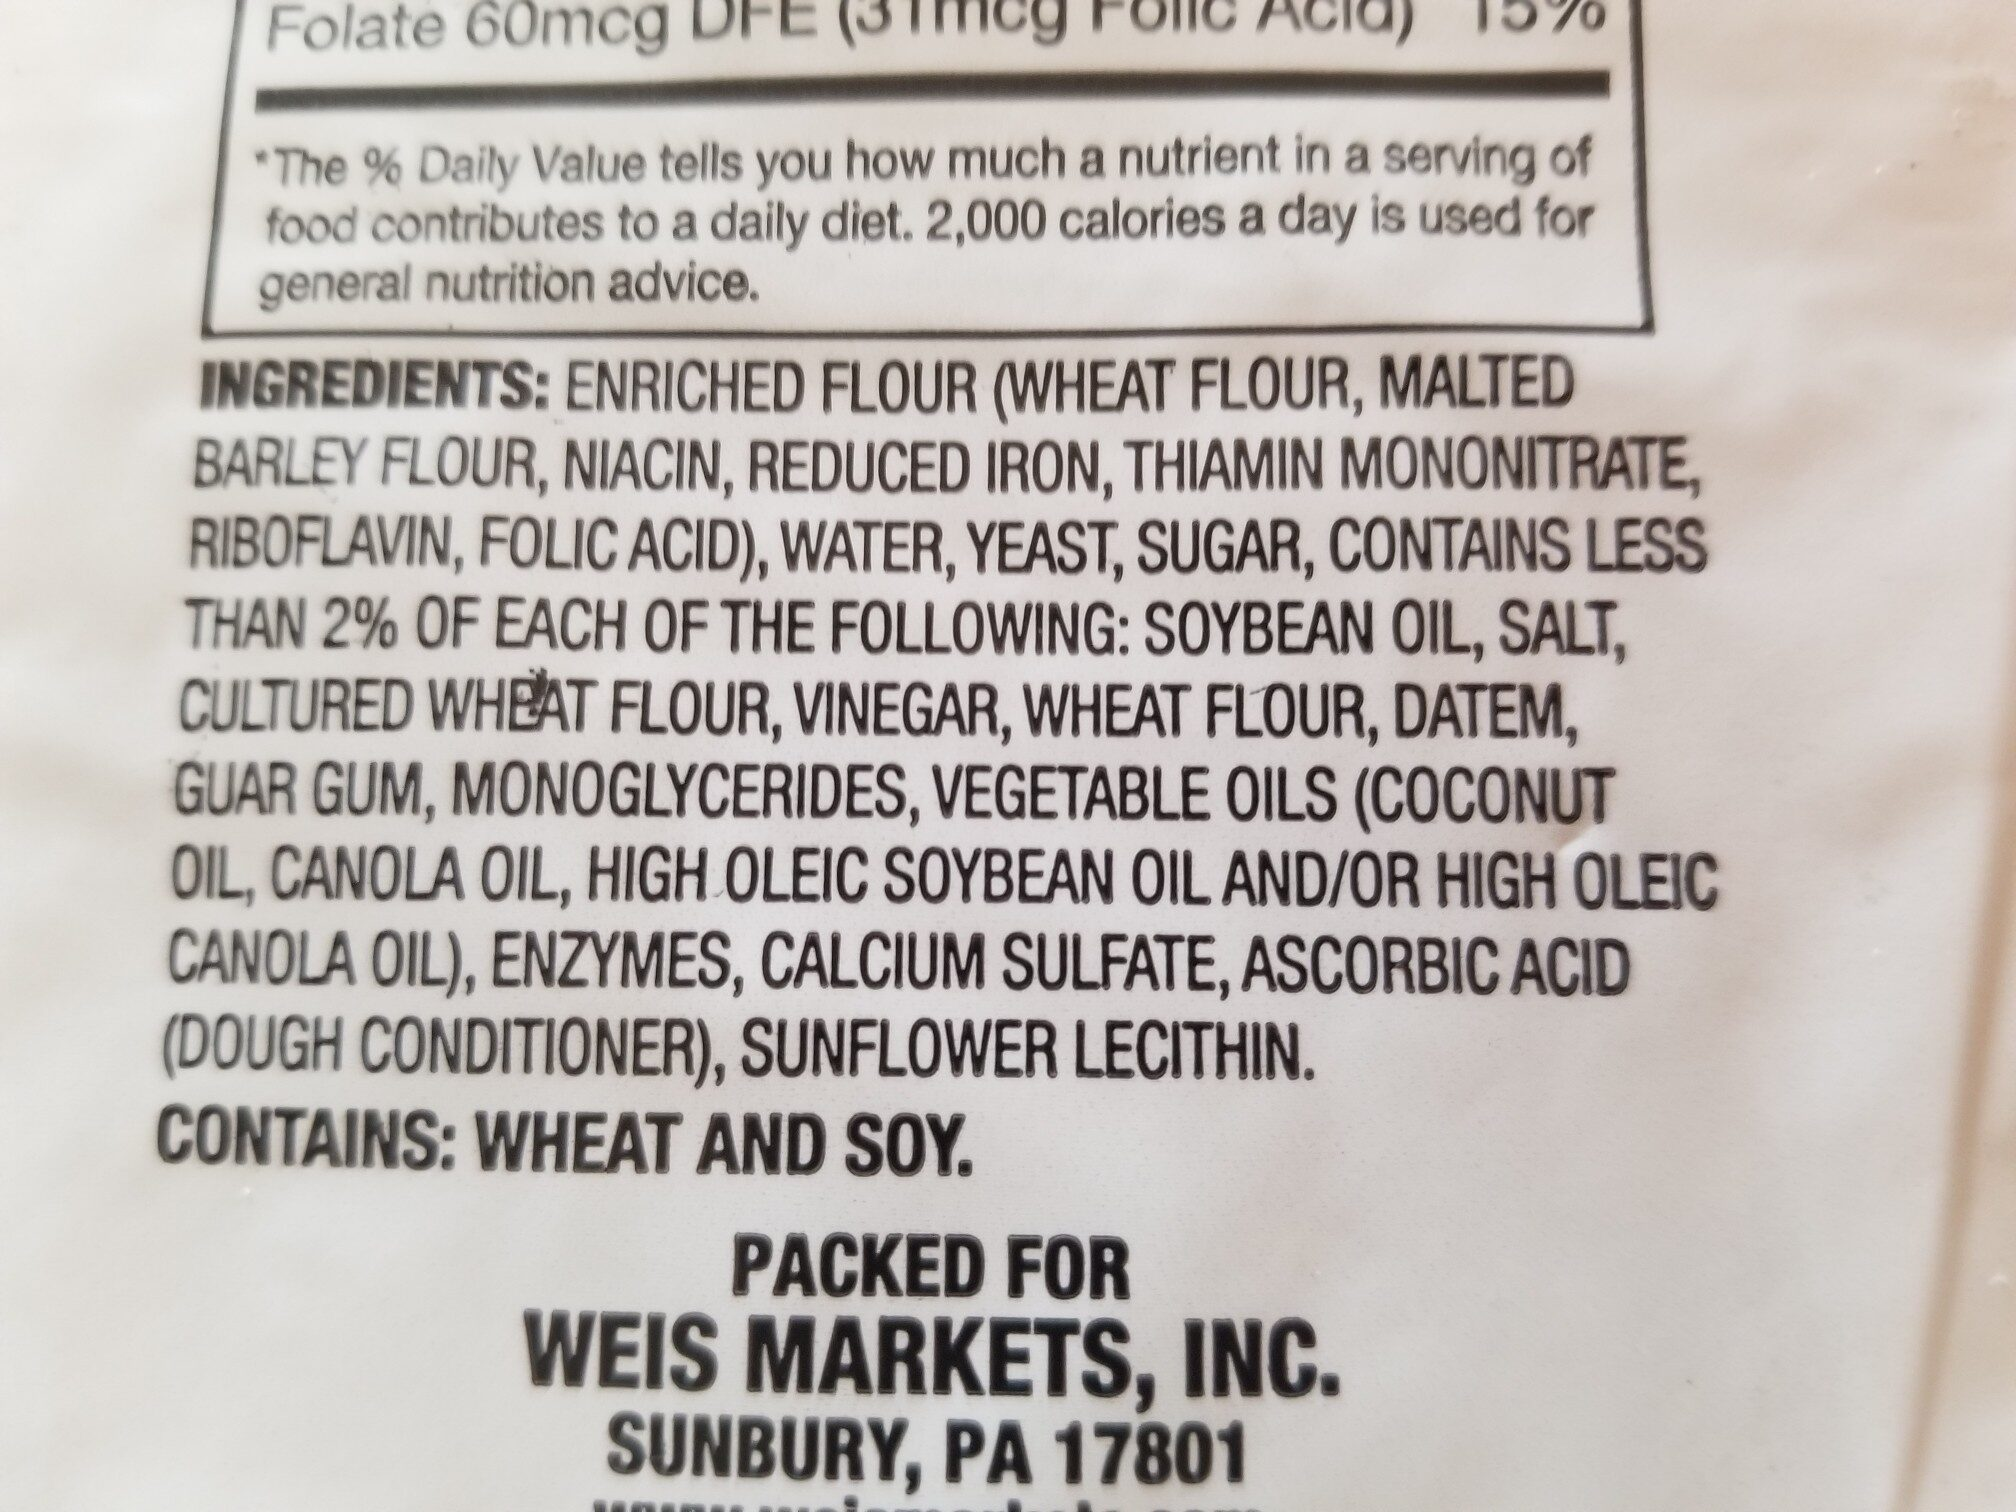 weis classic italian enriched bread - Ingredients - en